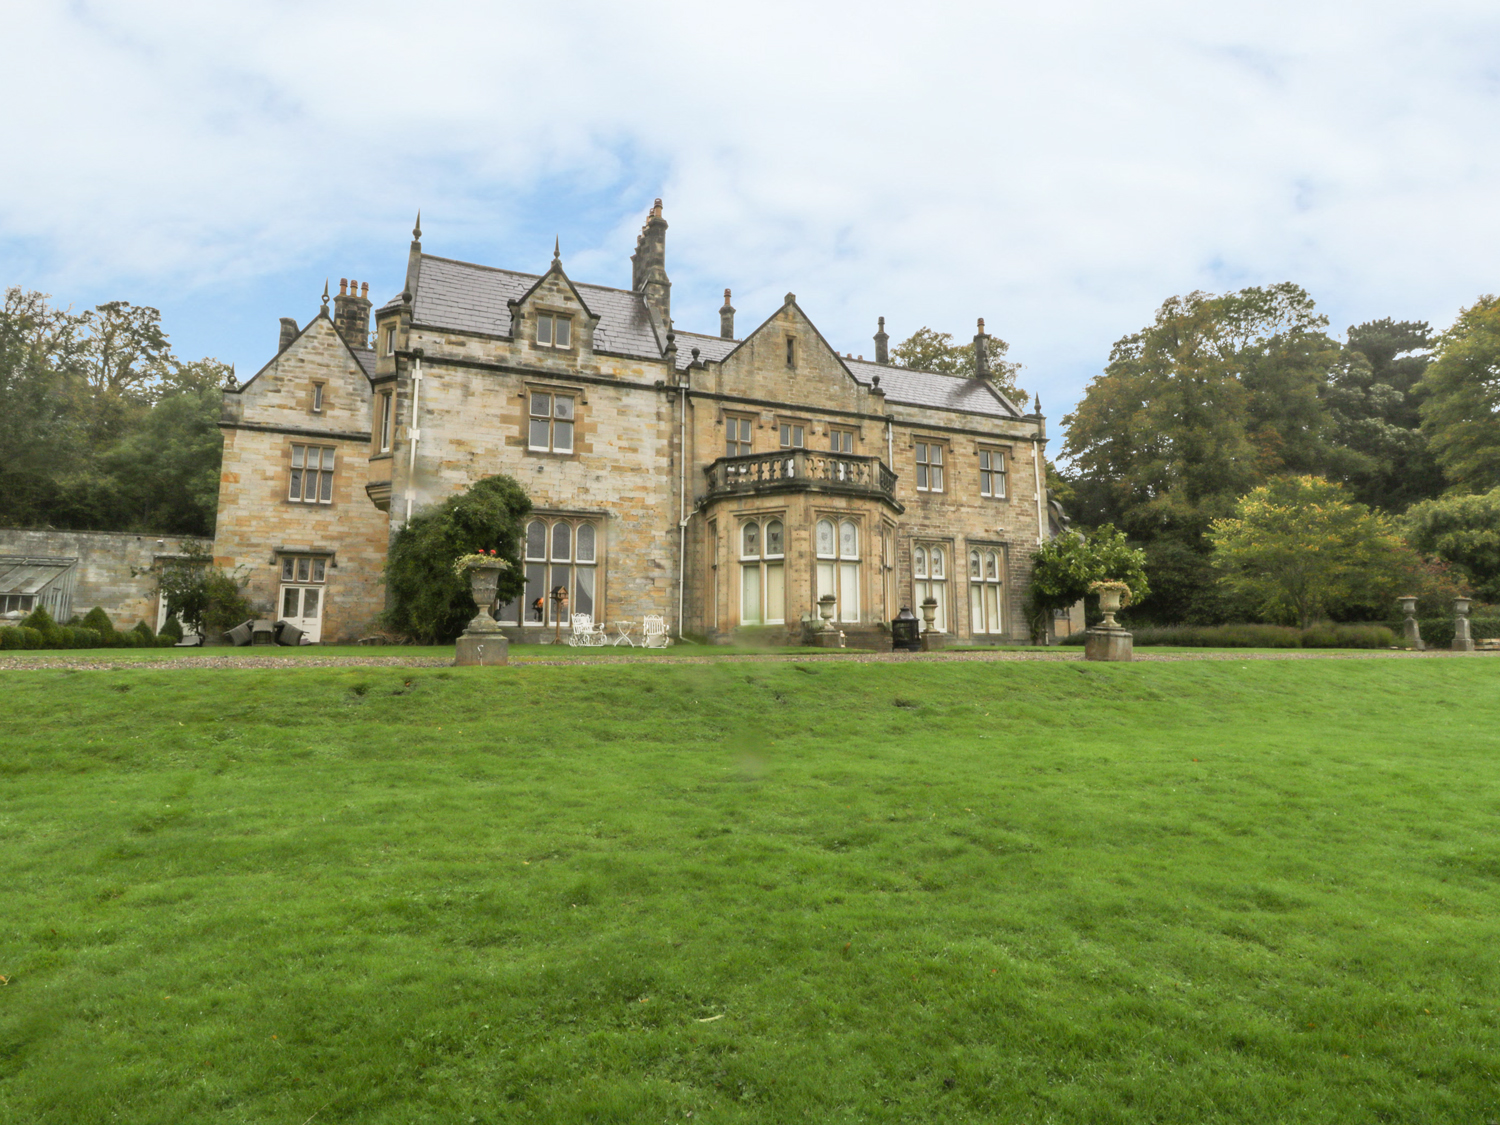 The North Wing at Sandhoe Hall